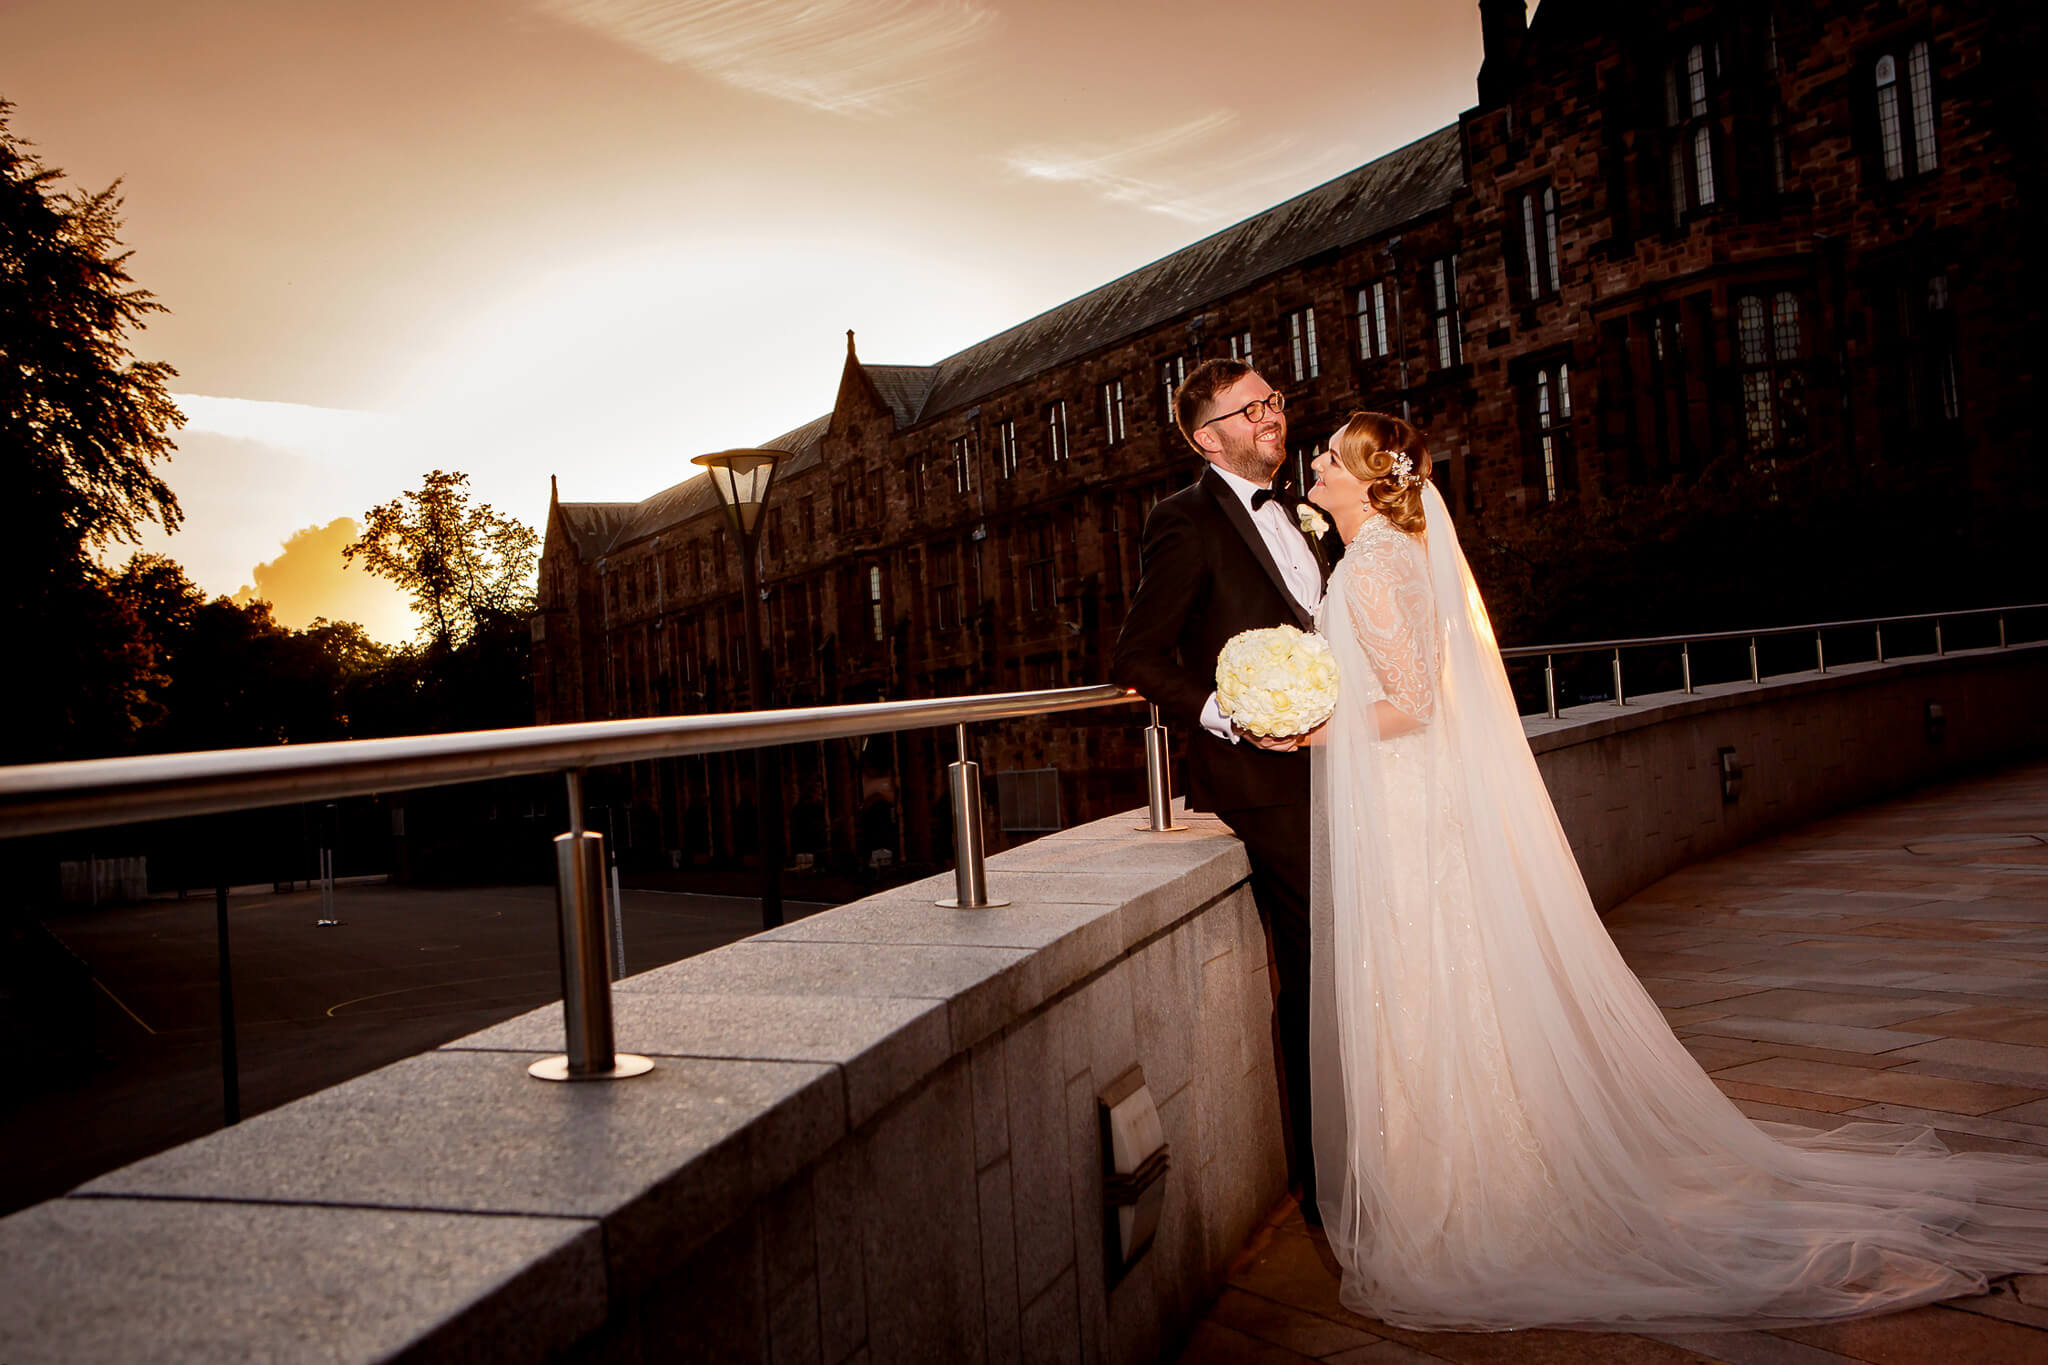 bolton-school-wedding-photographer-stanbury-photography-035